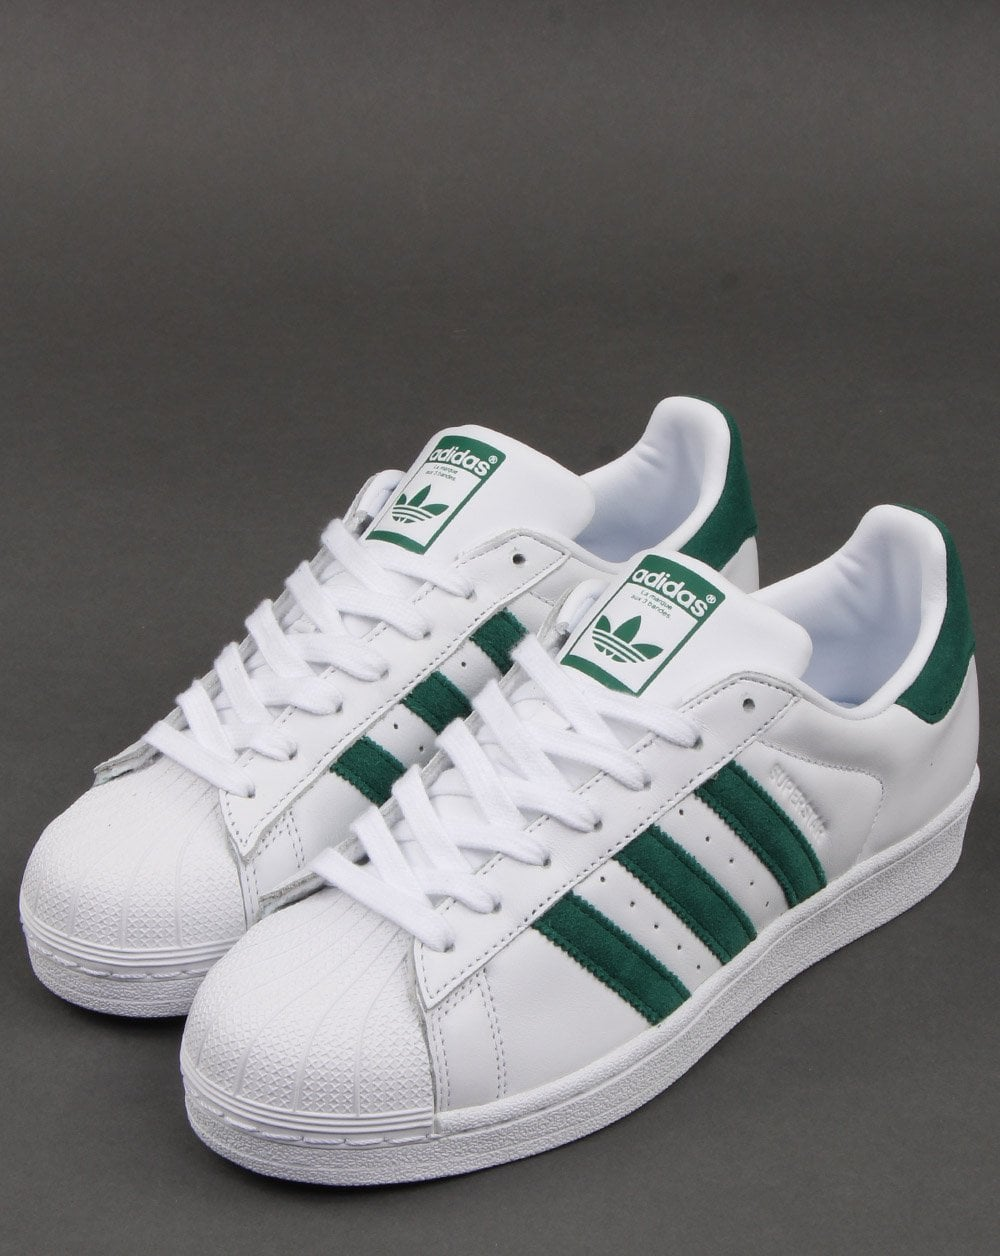 adidas Superstar trainer Run-DMC